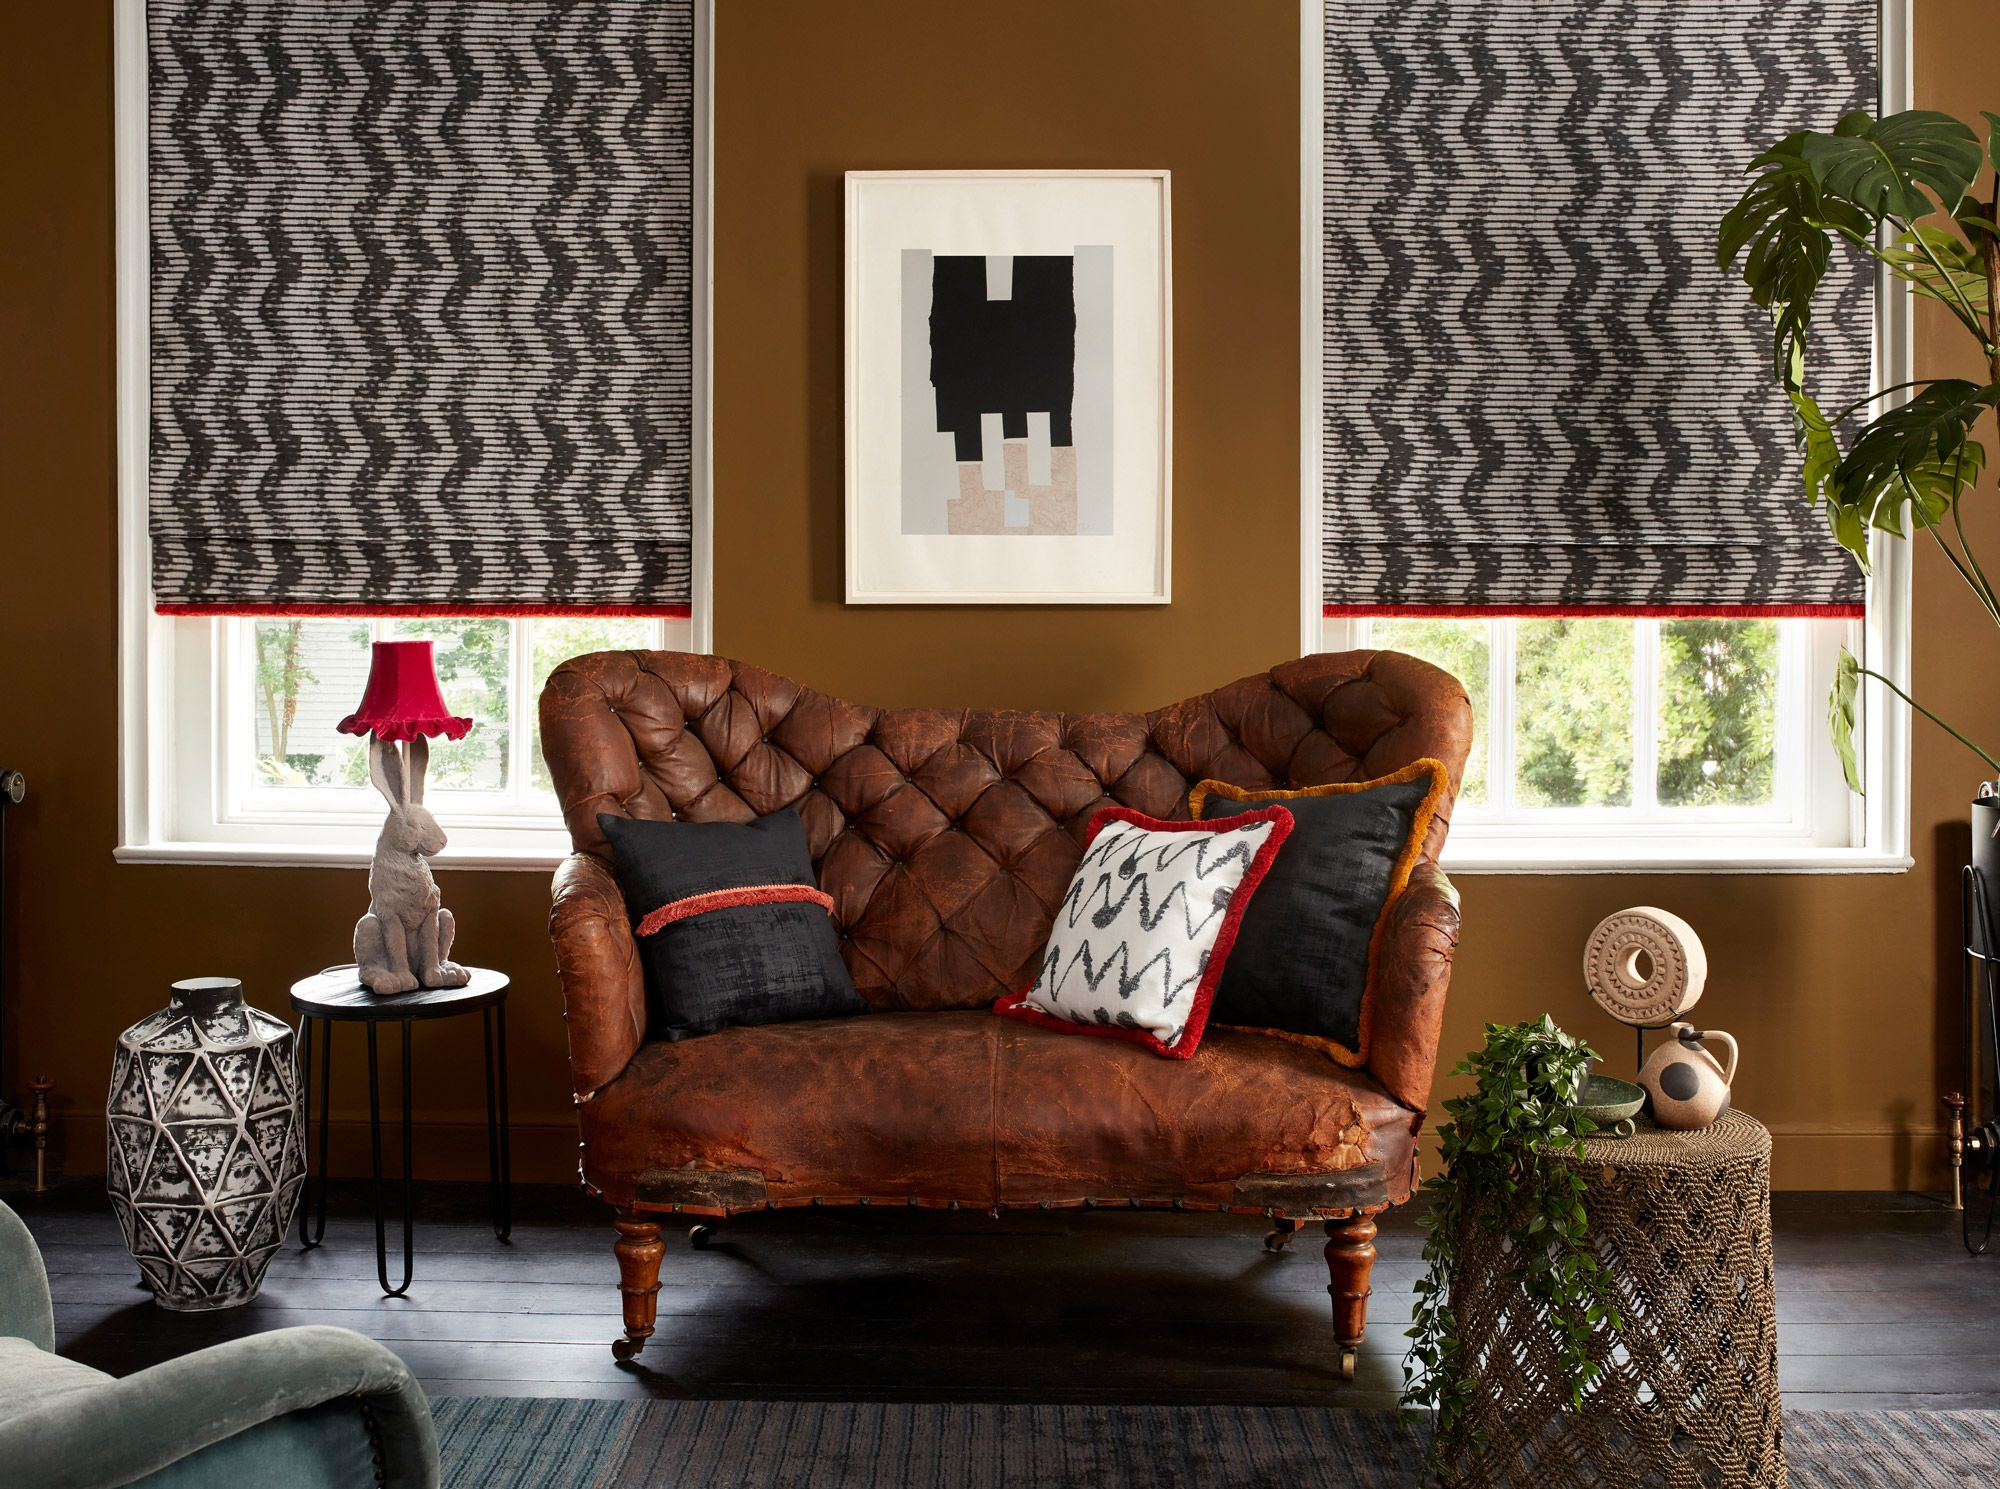 Hillarys Blinds Online >> Roman Blinds | 50% Off Red Hot Sale! | Extra £25 OFF! | Hillarys